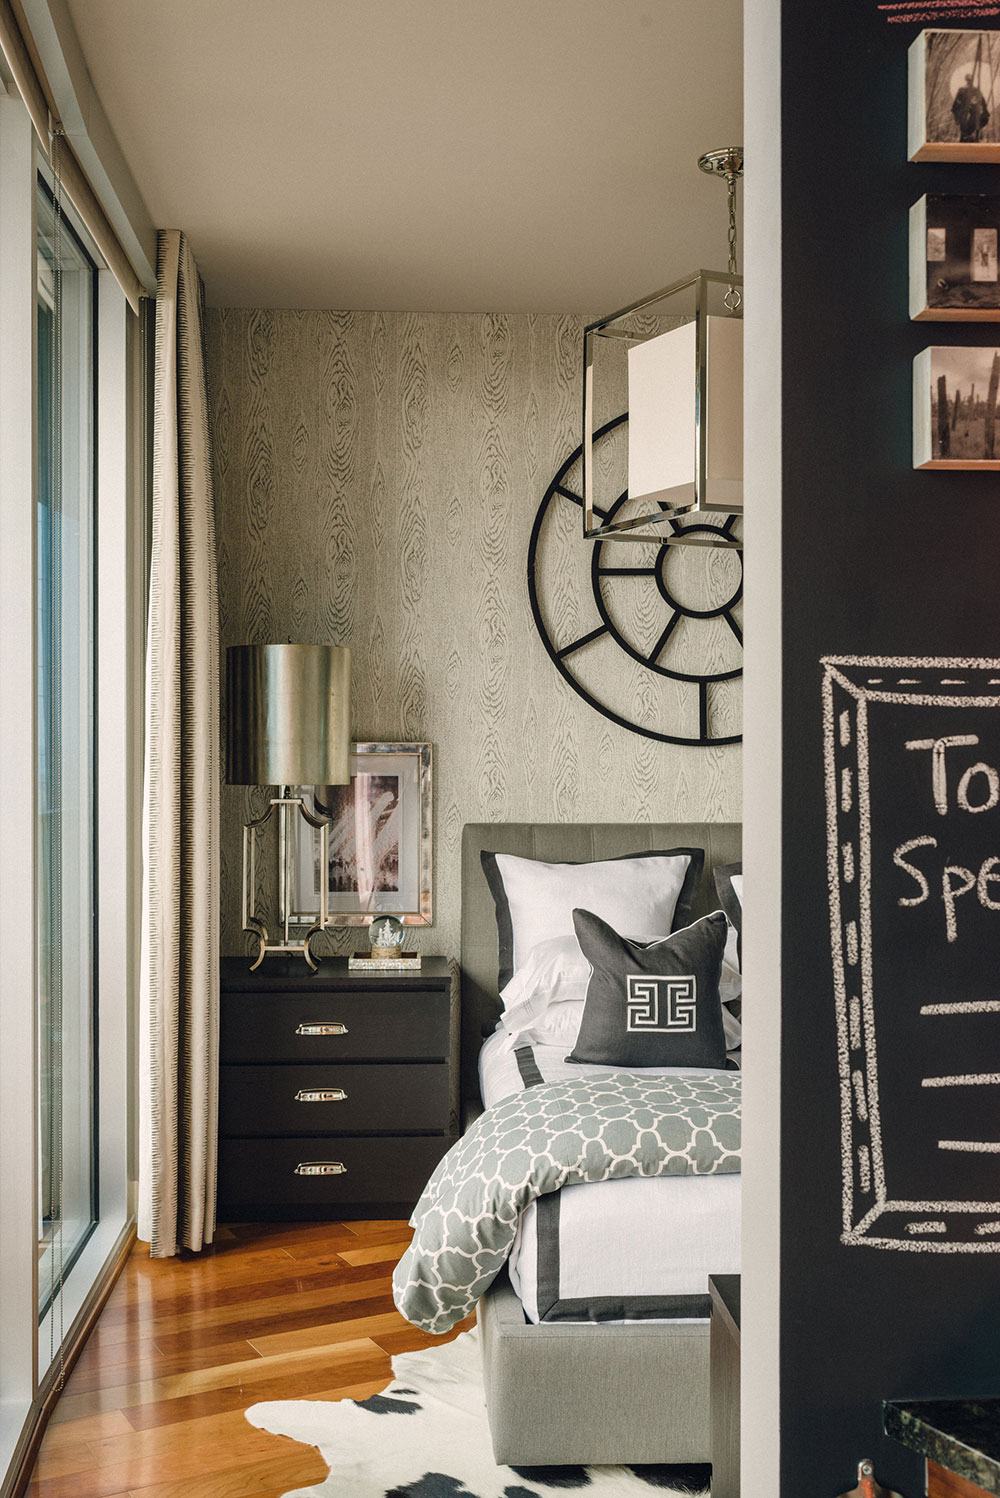 8 Decorating Mistakes to Avoid in a Studio Apartment Real Simple